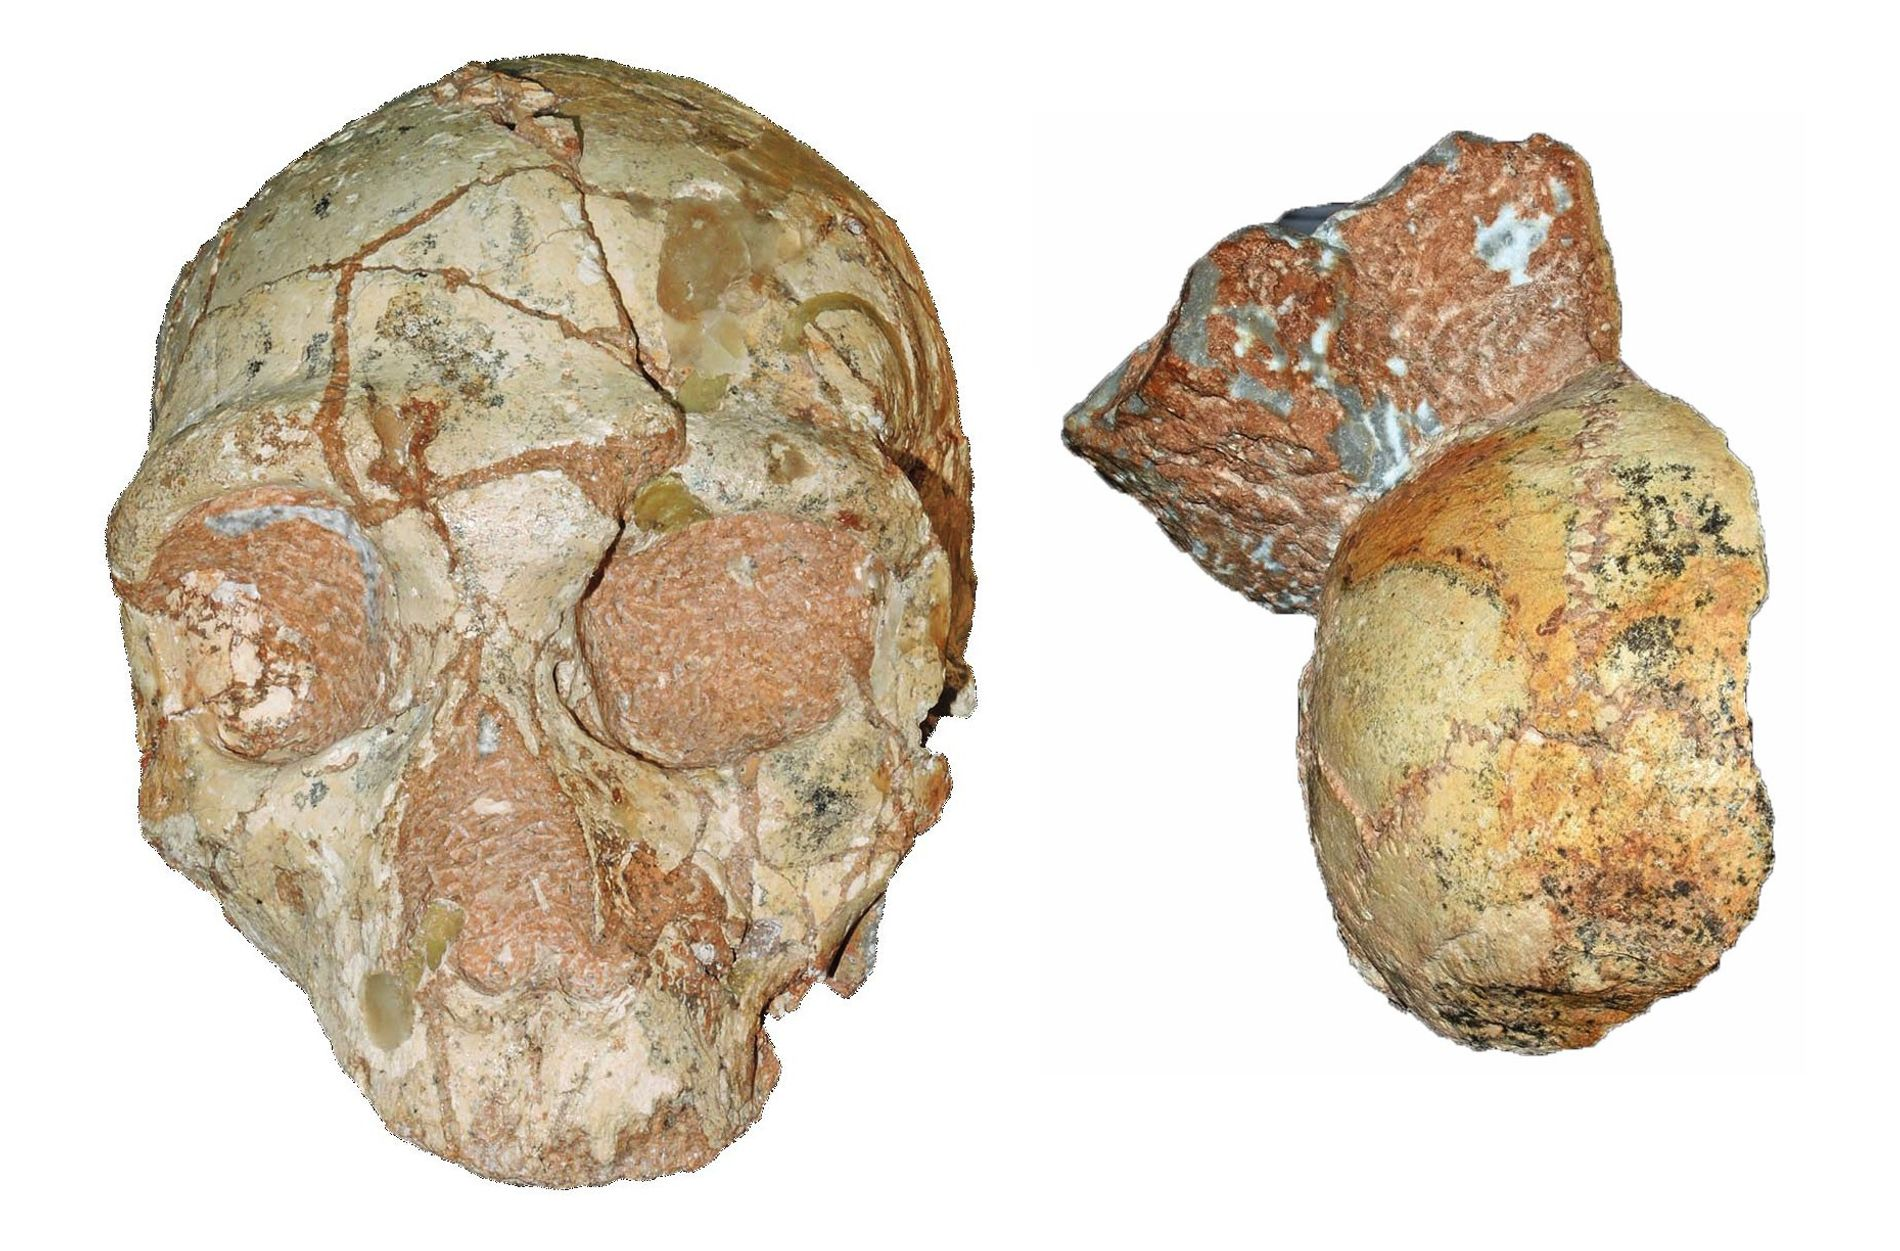 These fragmented fossils, which were found mere inches apart, could be the skulls from two hominin ...